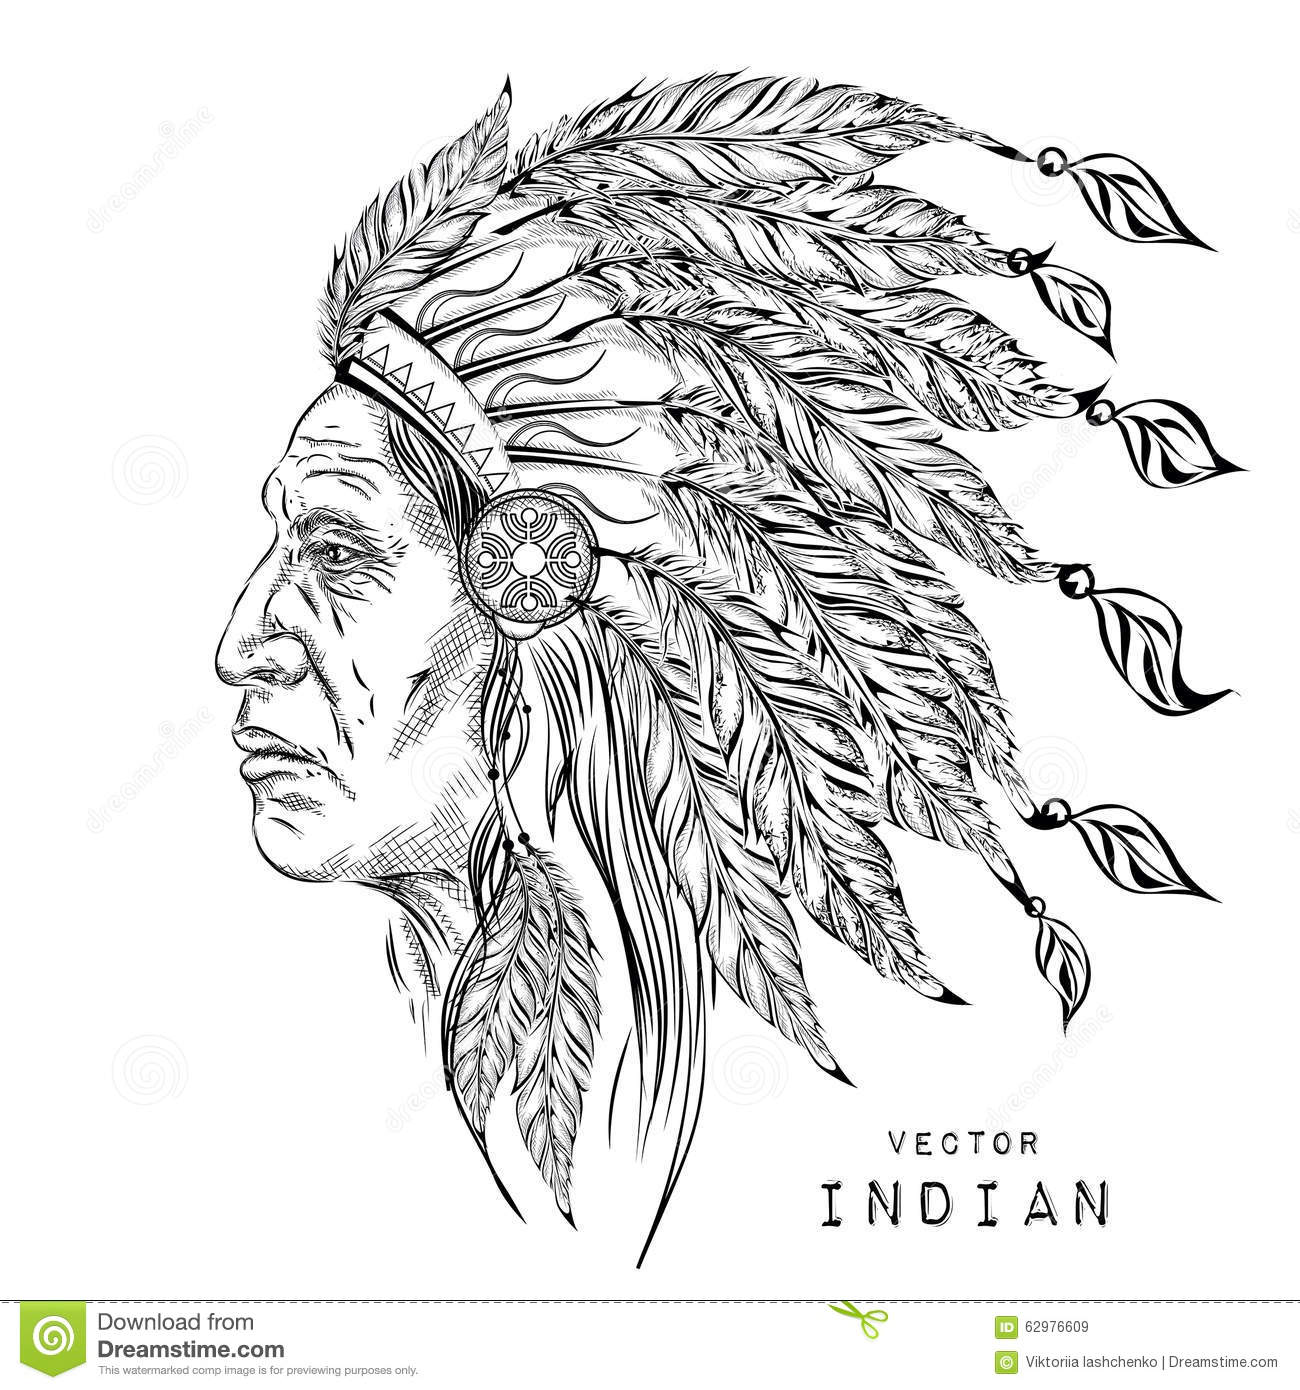 Man In The Native American Indian Chief Black Roach Indian Feather